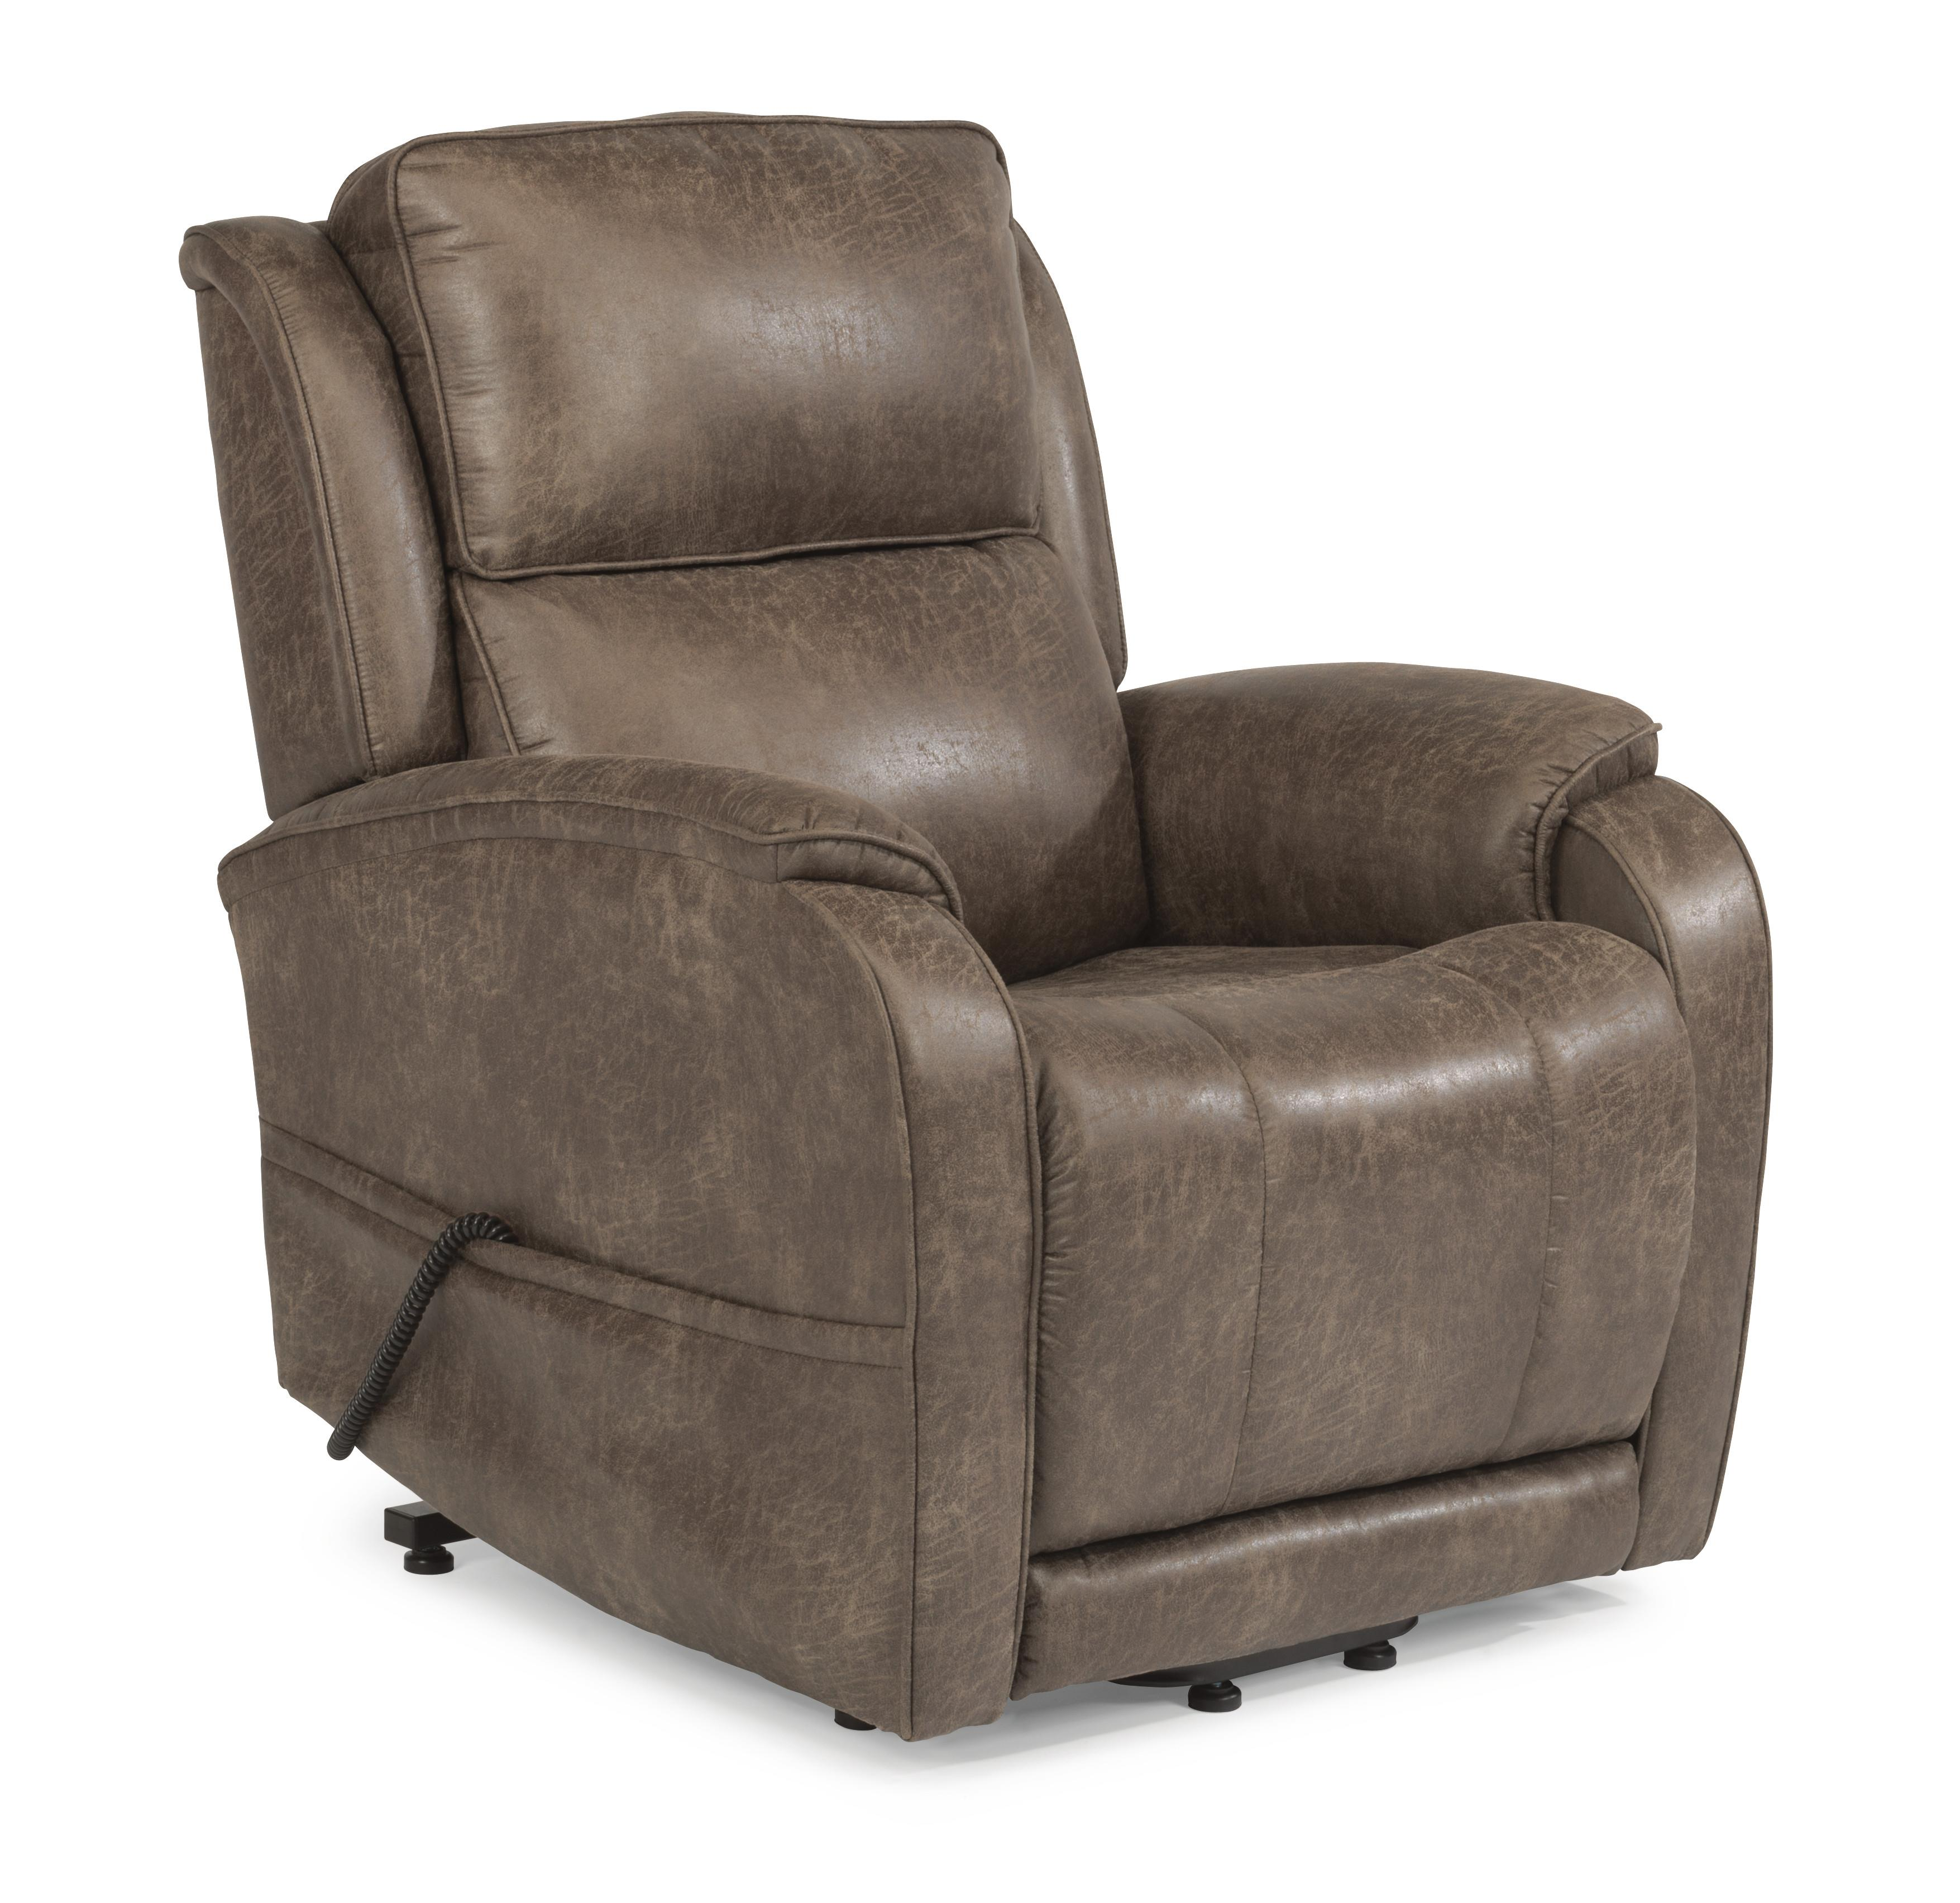 Flexsteel Latitudes Lift Chairs Power Lift Recliner - Item Number: 1905-55-861-04